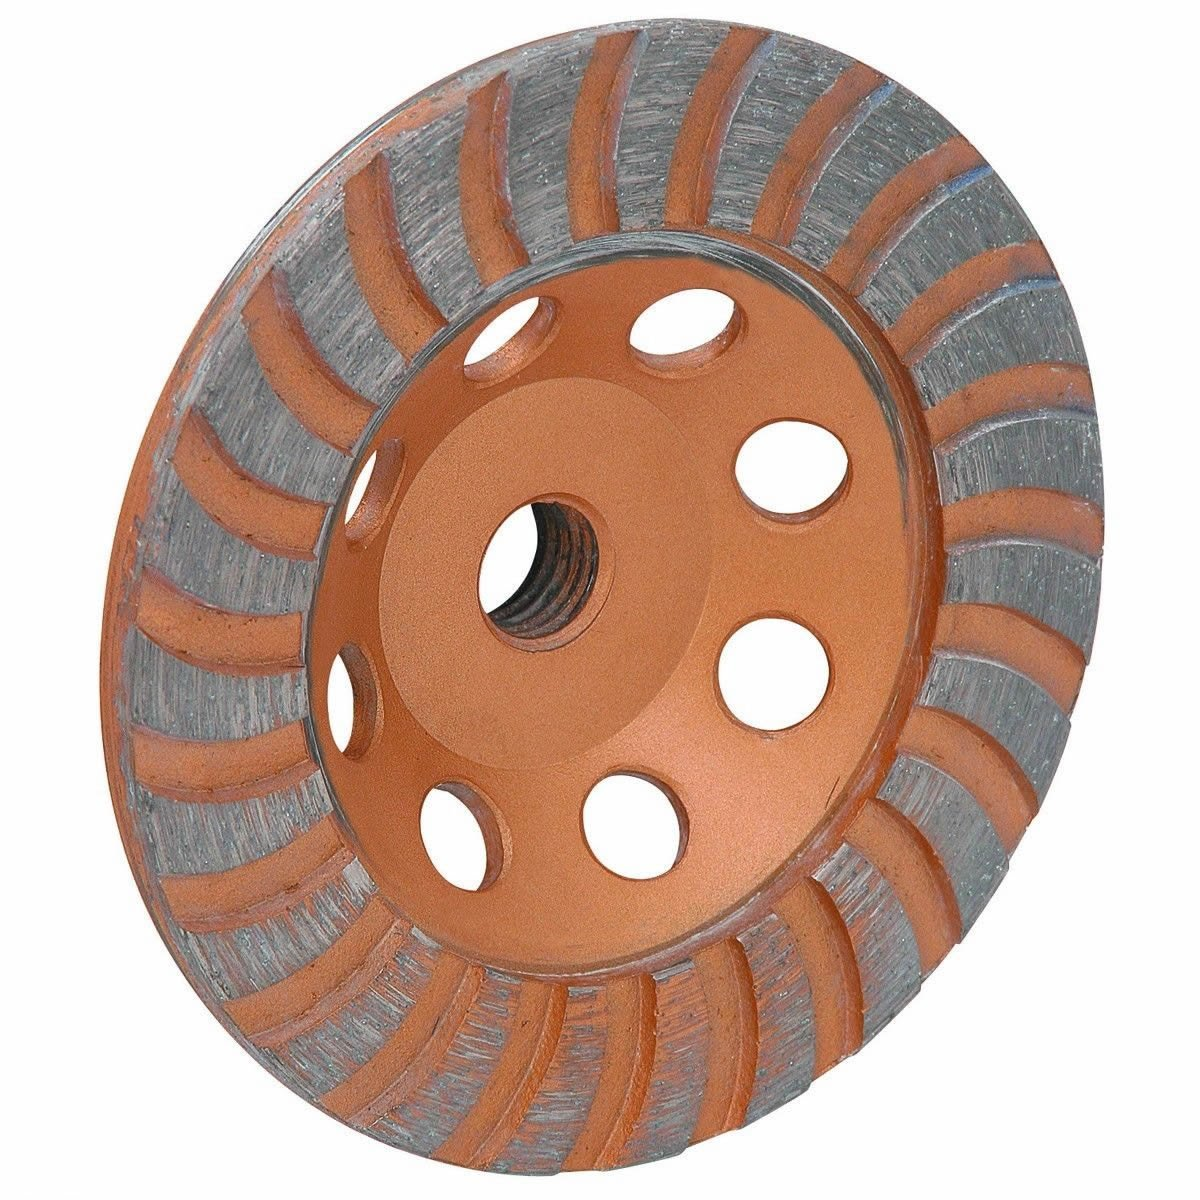 4 1/2'' Inch Diamond Cup Grinding Grinder Wheel For Stone Concrete Surfacing by Generic